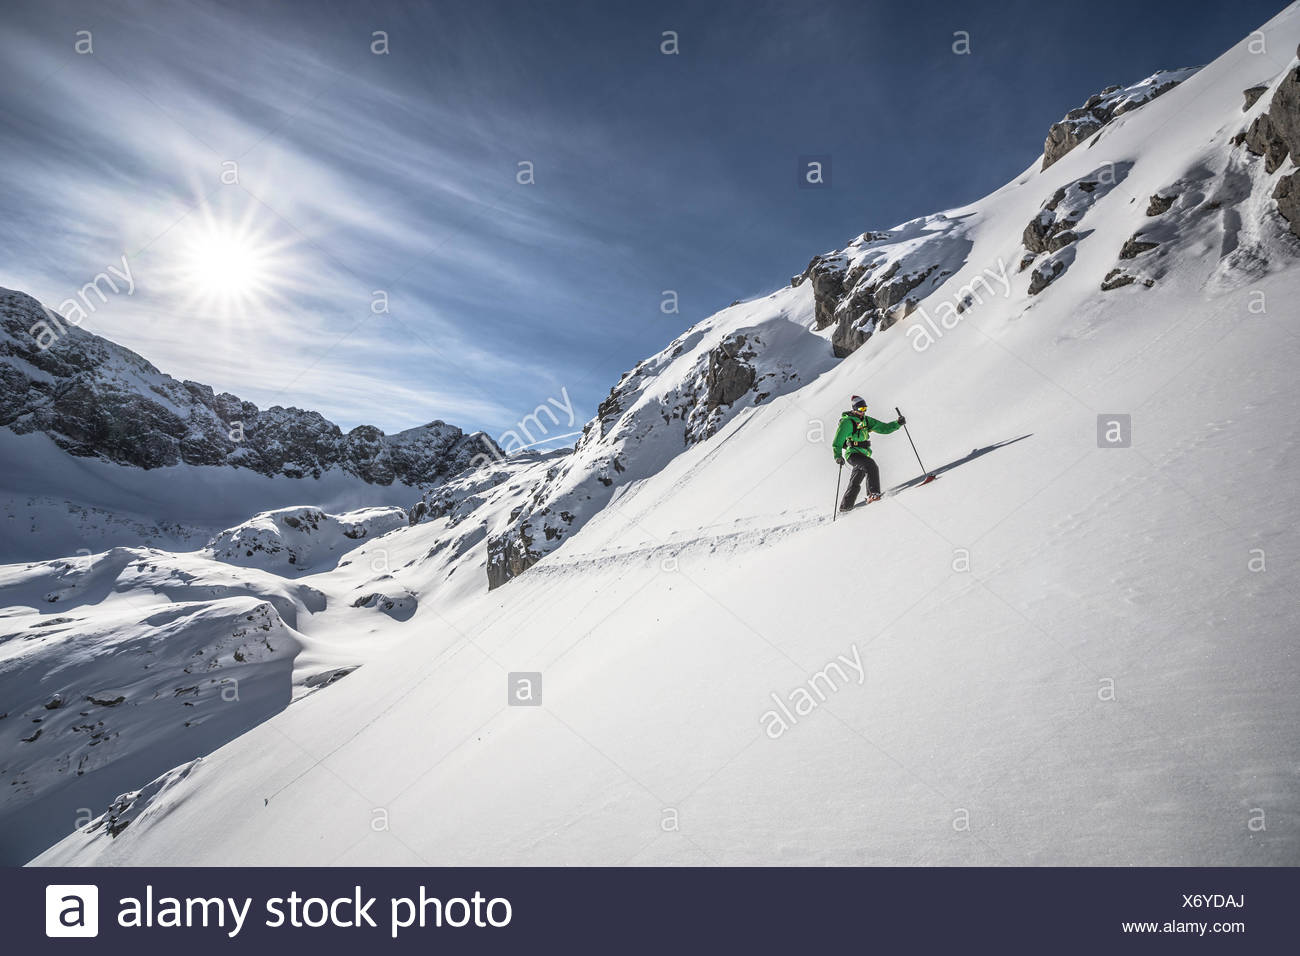 Austria, Male skier heading uphill - Stock Image